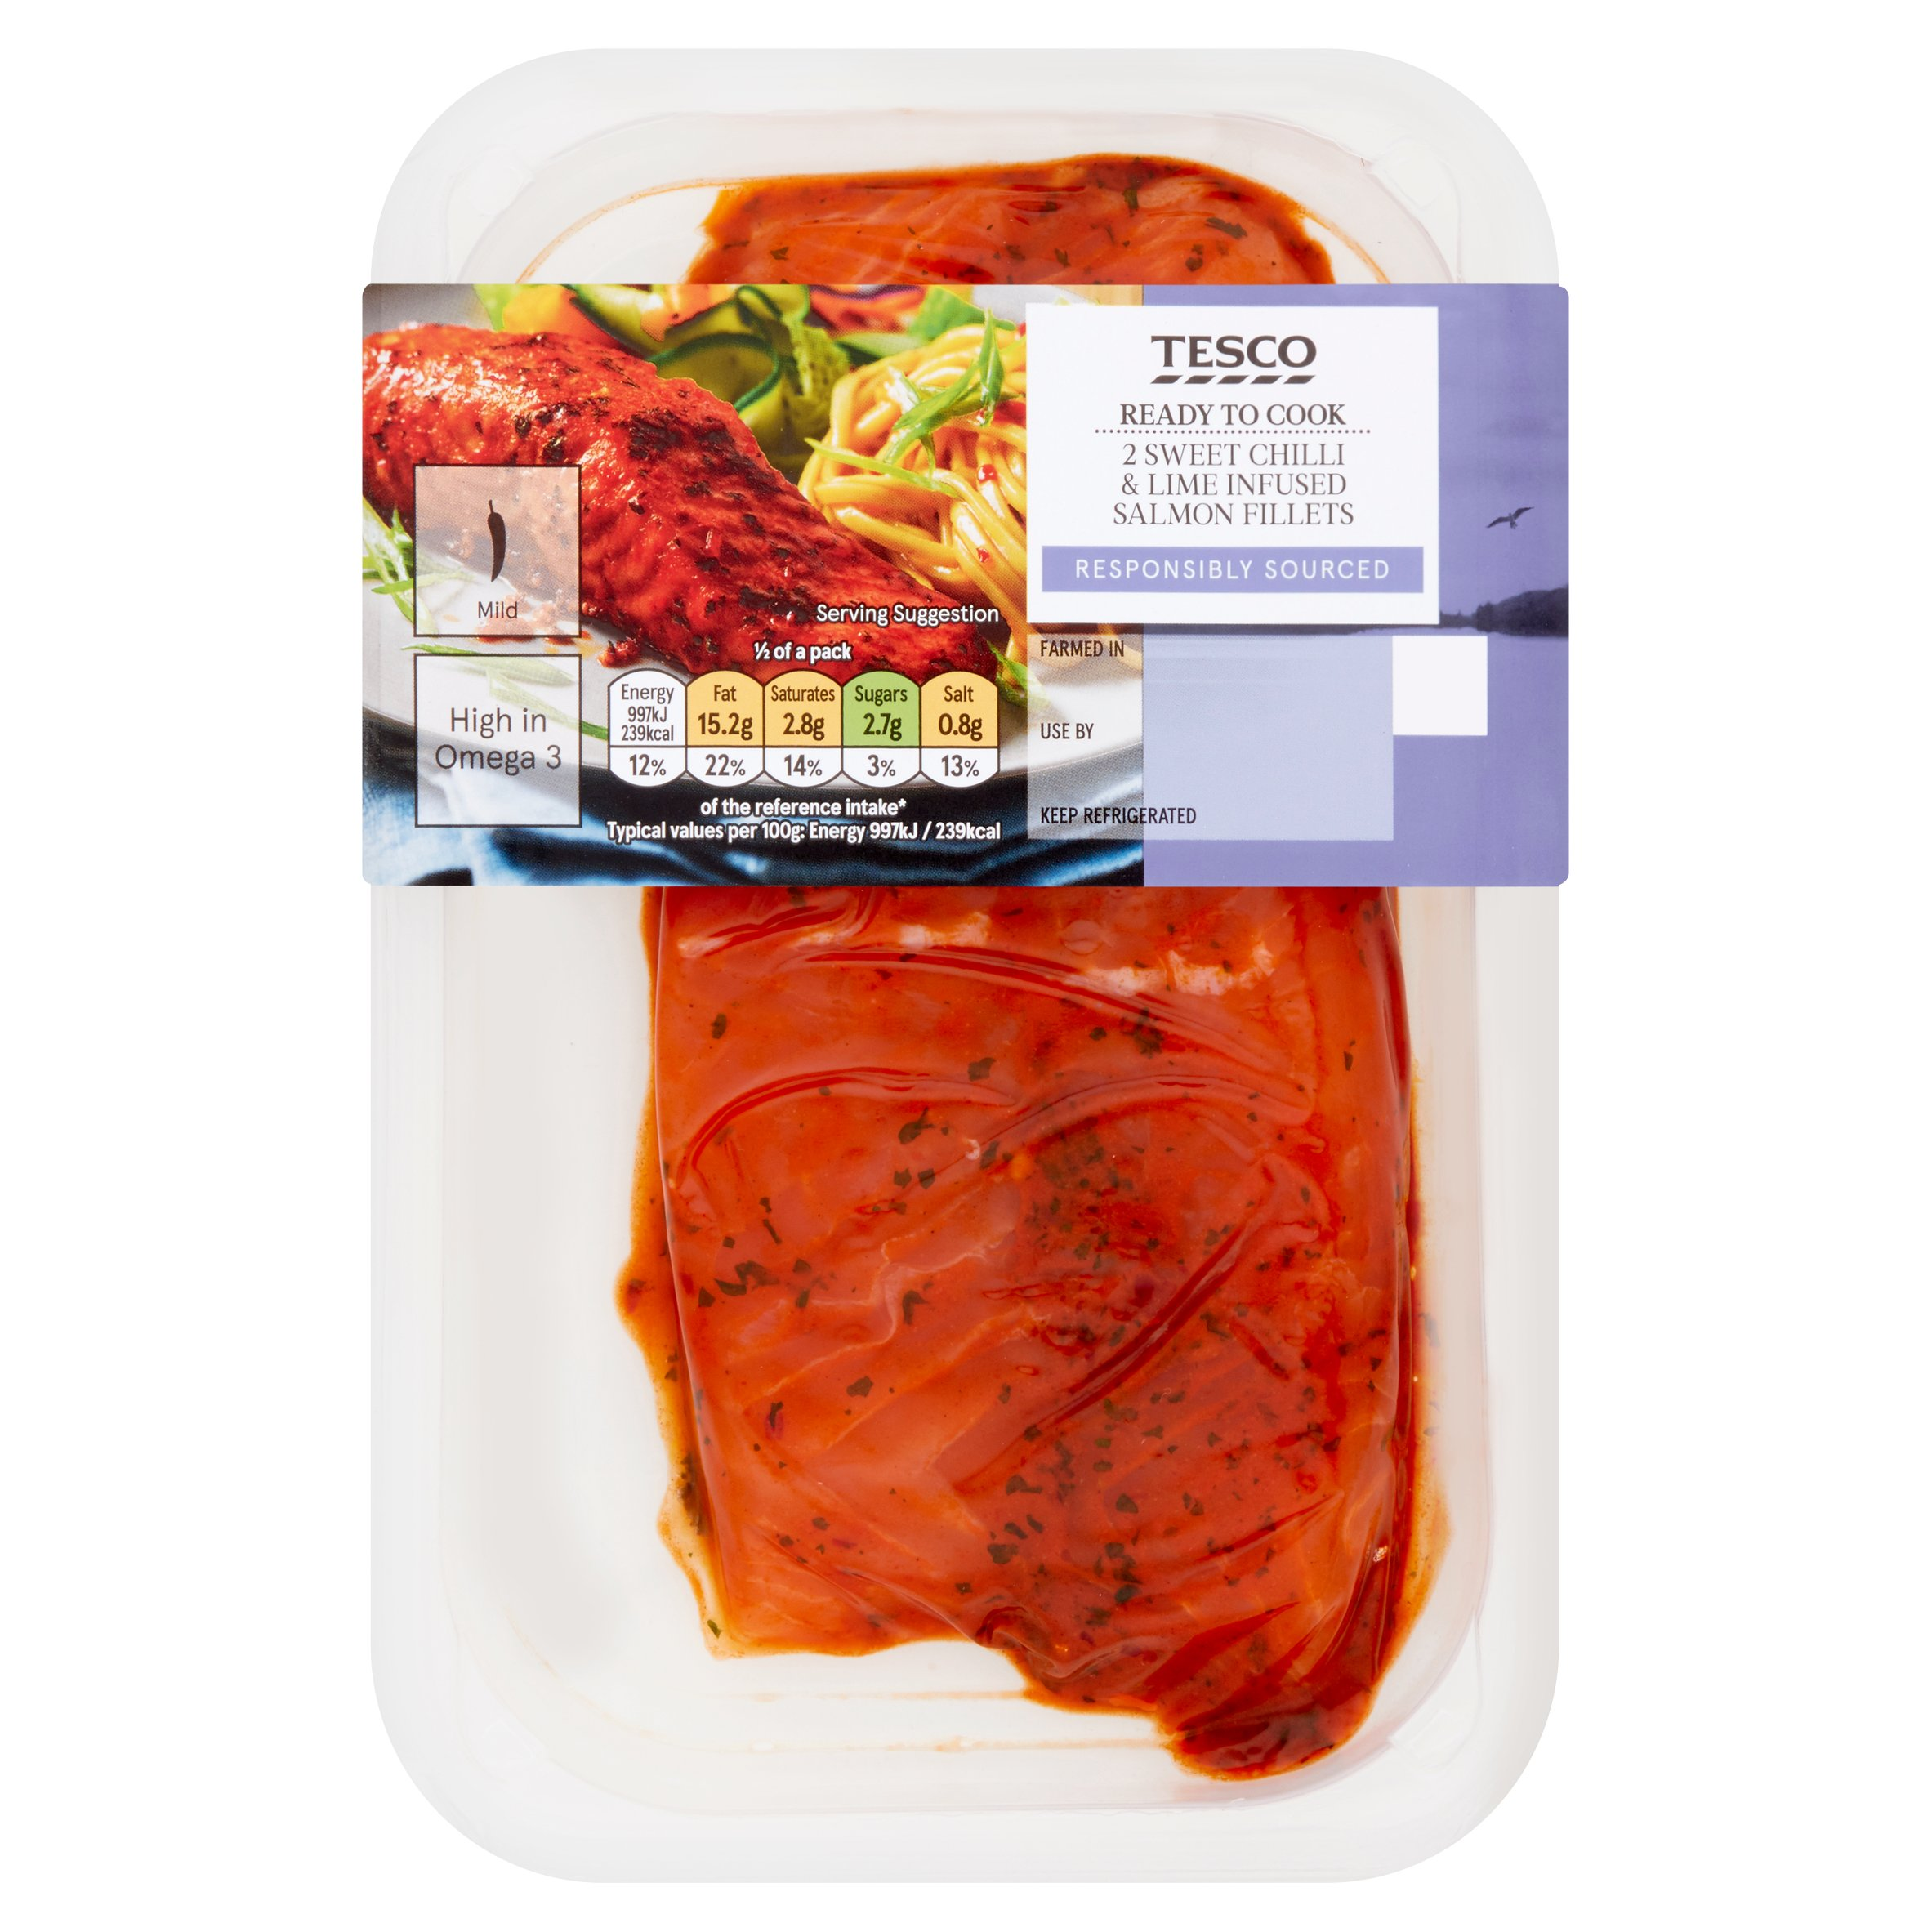 Tesco 2 Sweet Chilli & Lime Infused Salmon 230G